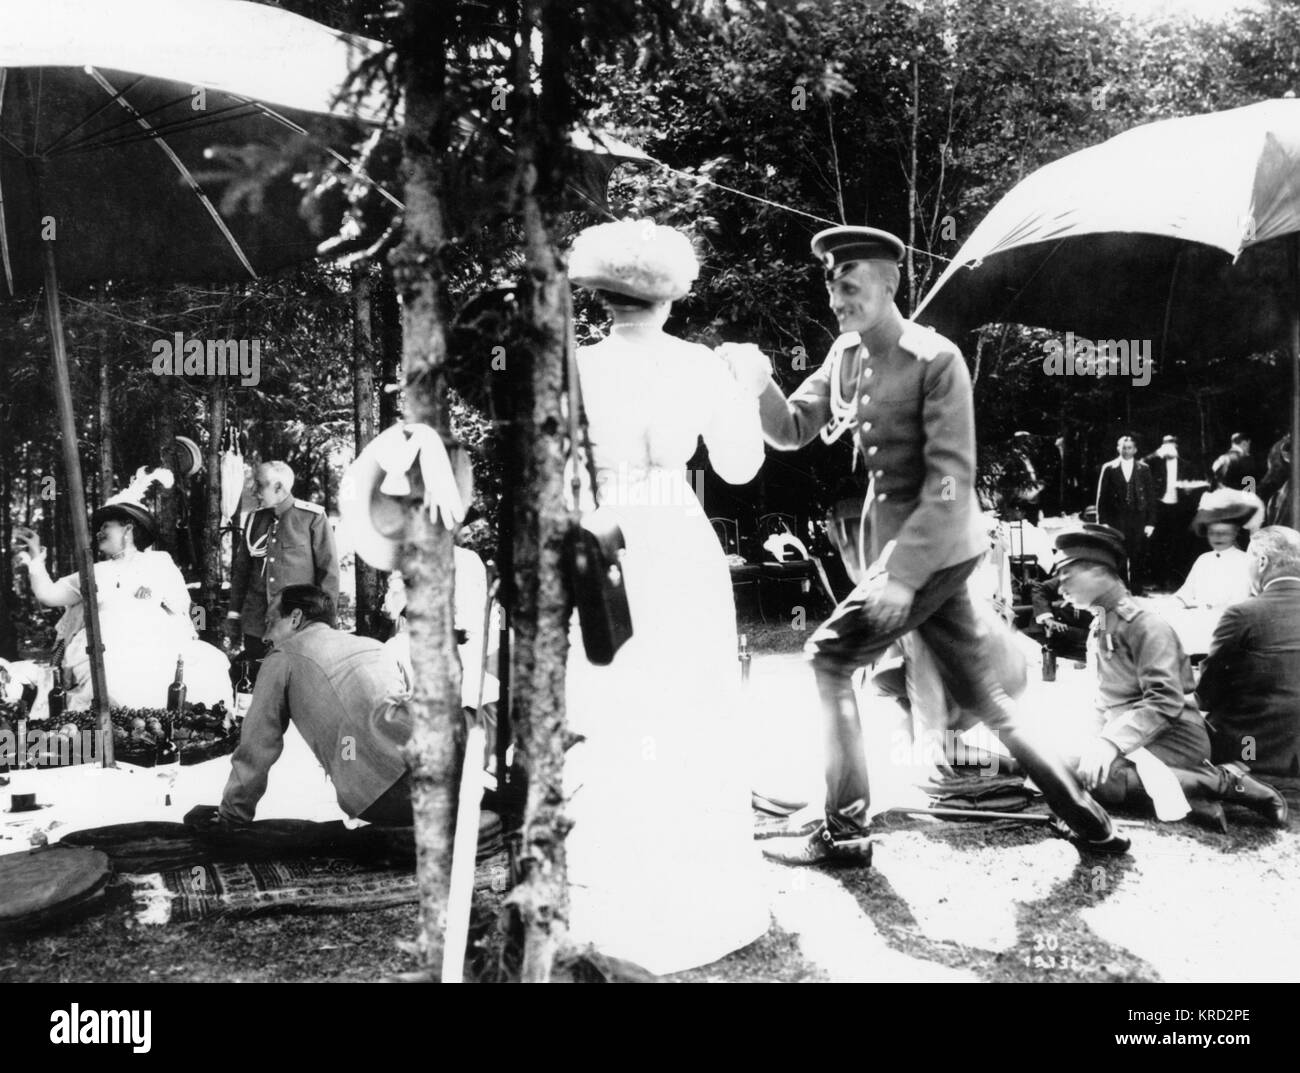 A picnic held in 1913 that is seemingly entirely consisting of members of the Russian aristocracy.     Date: 1913 - Stock Image